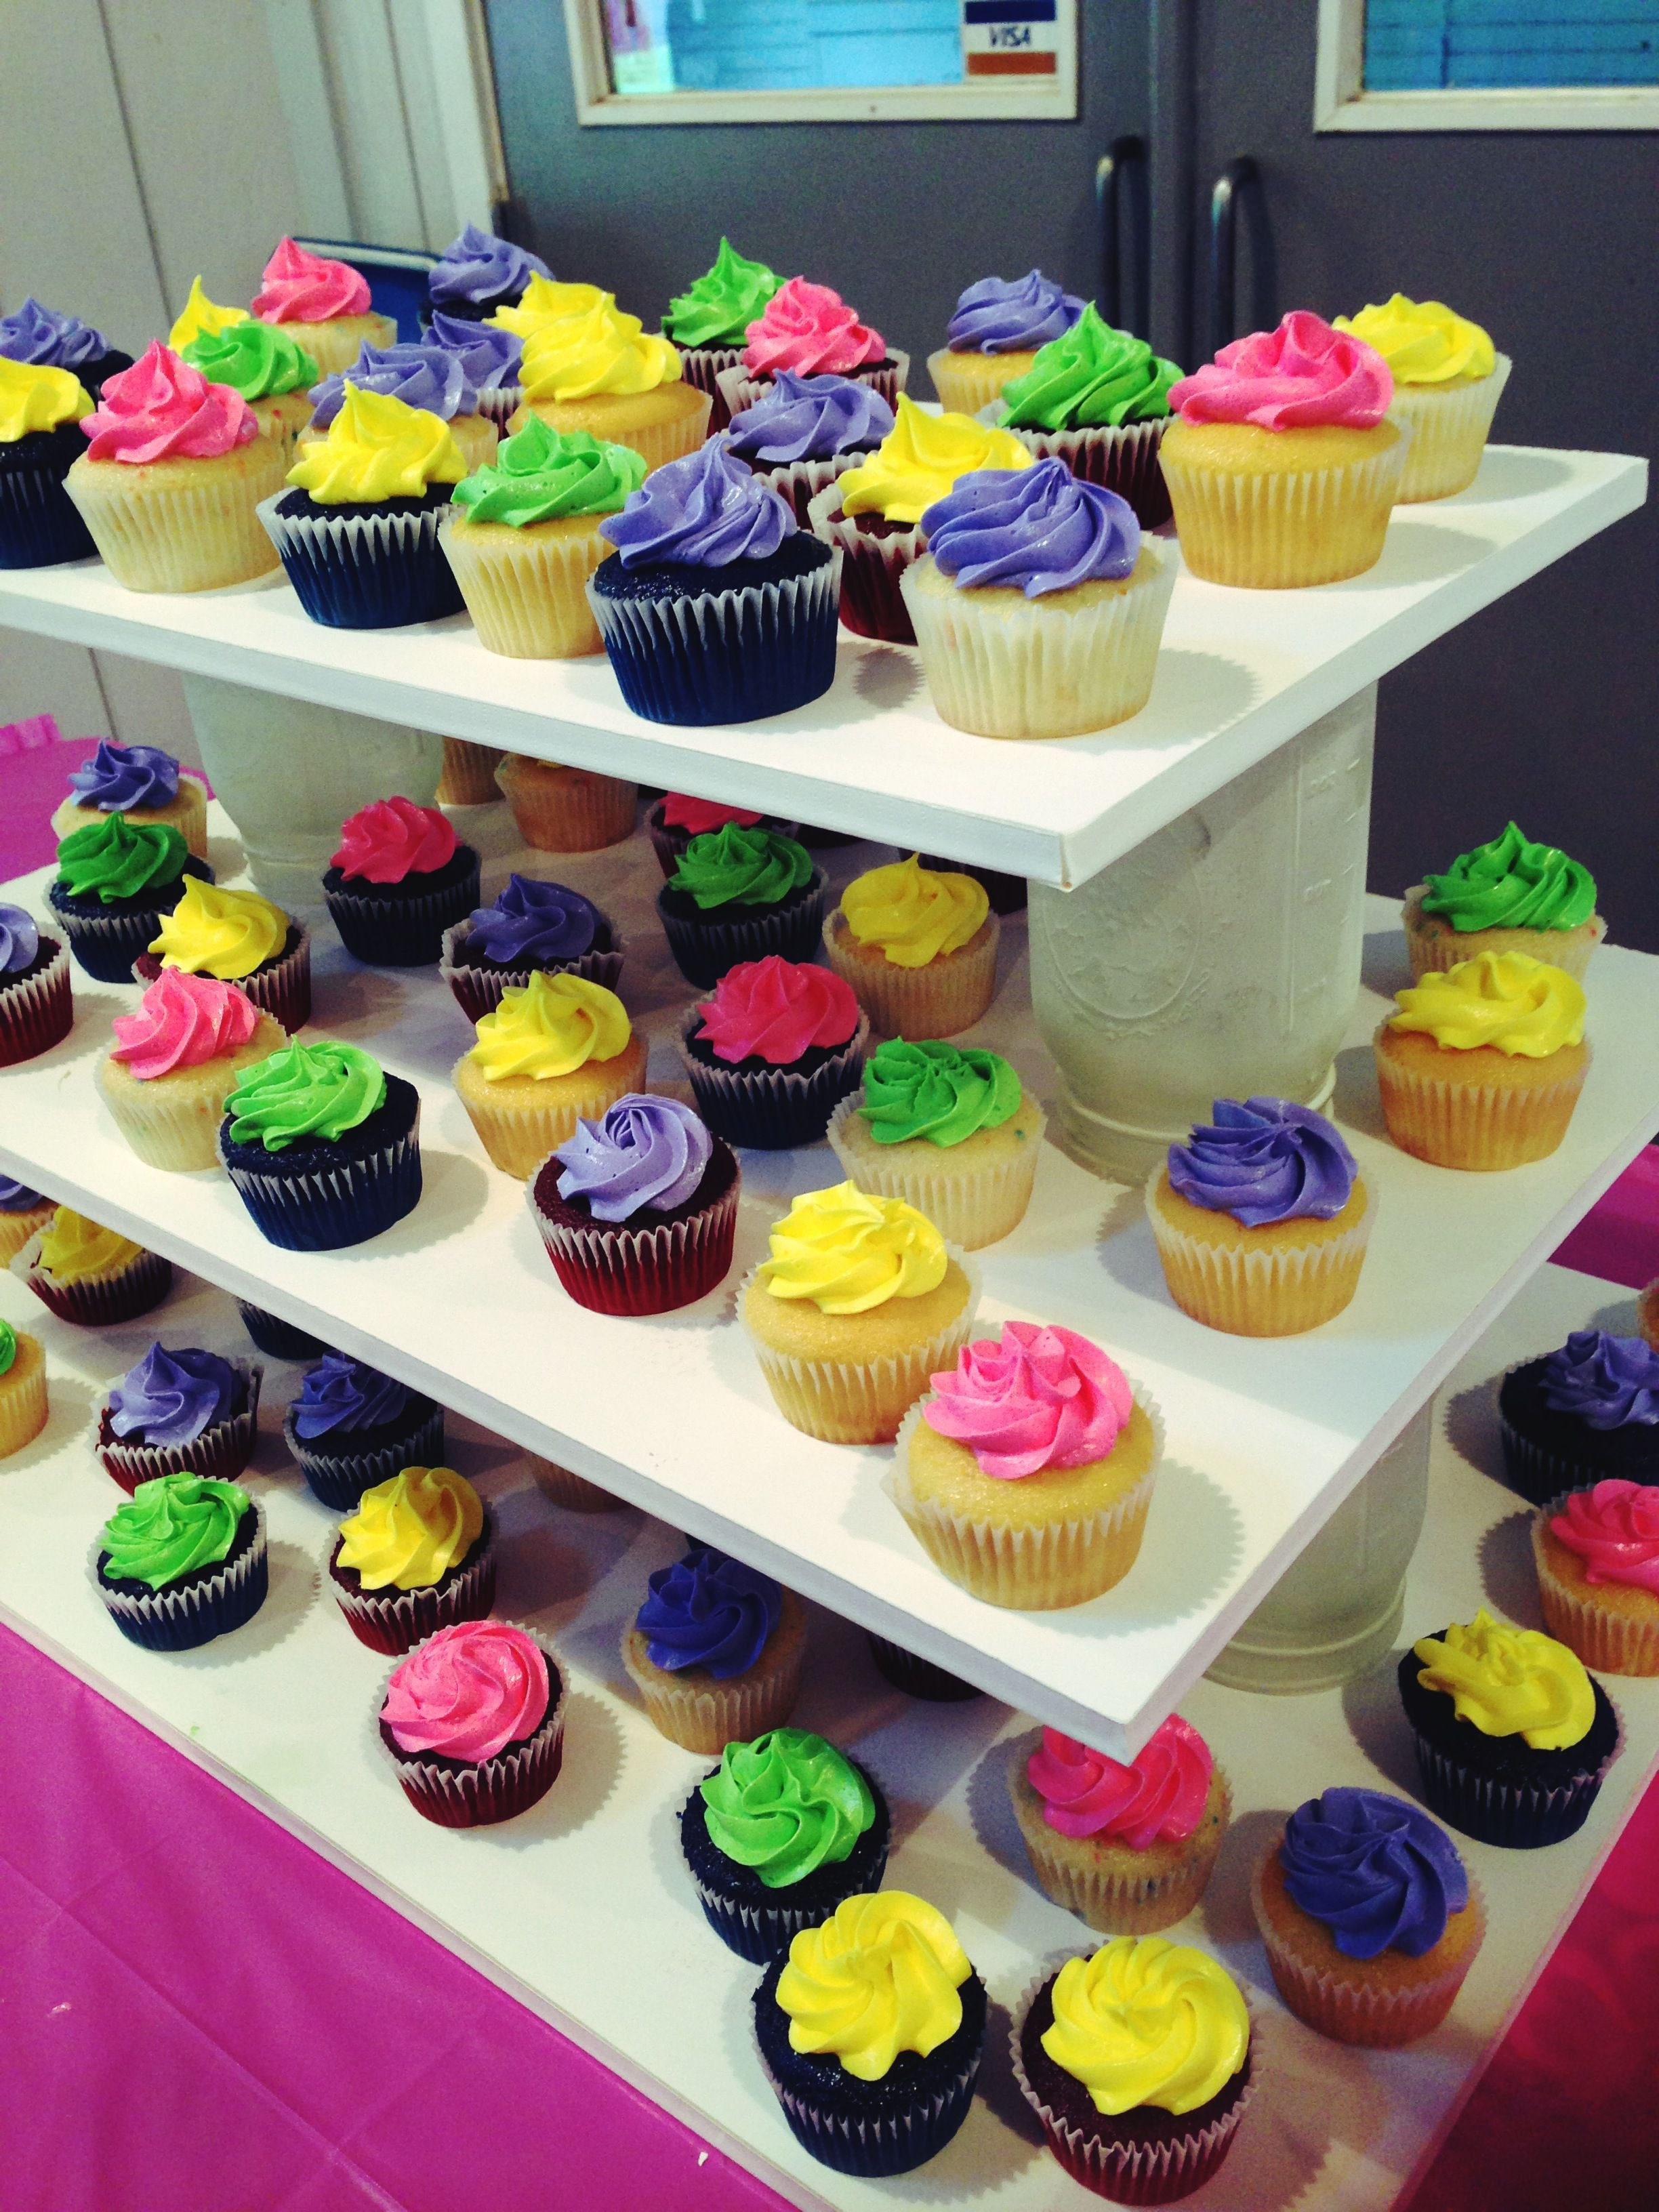 DIY cupcake tower/stand using foam boards and frosted ...